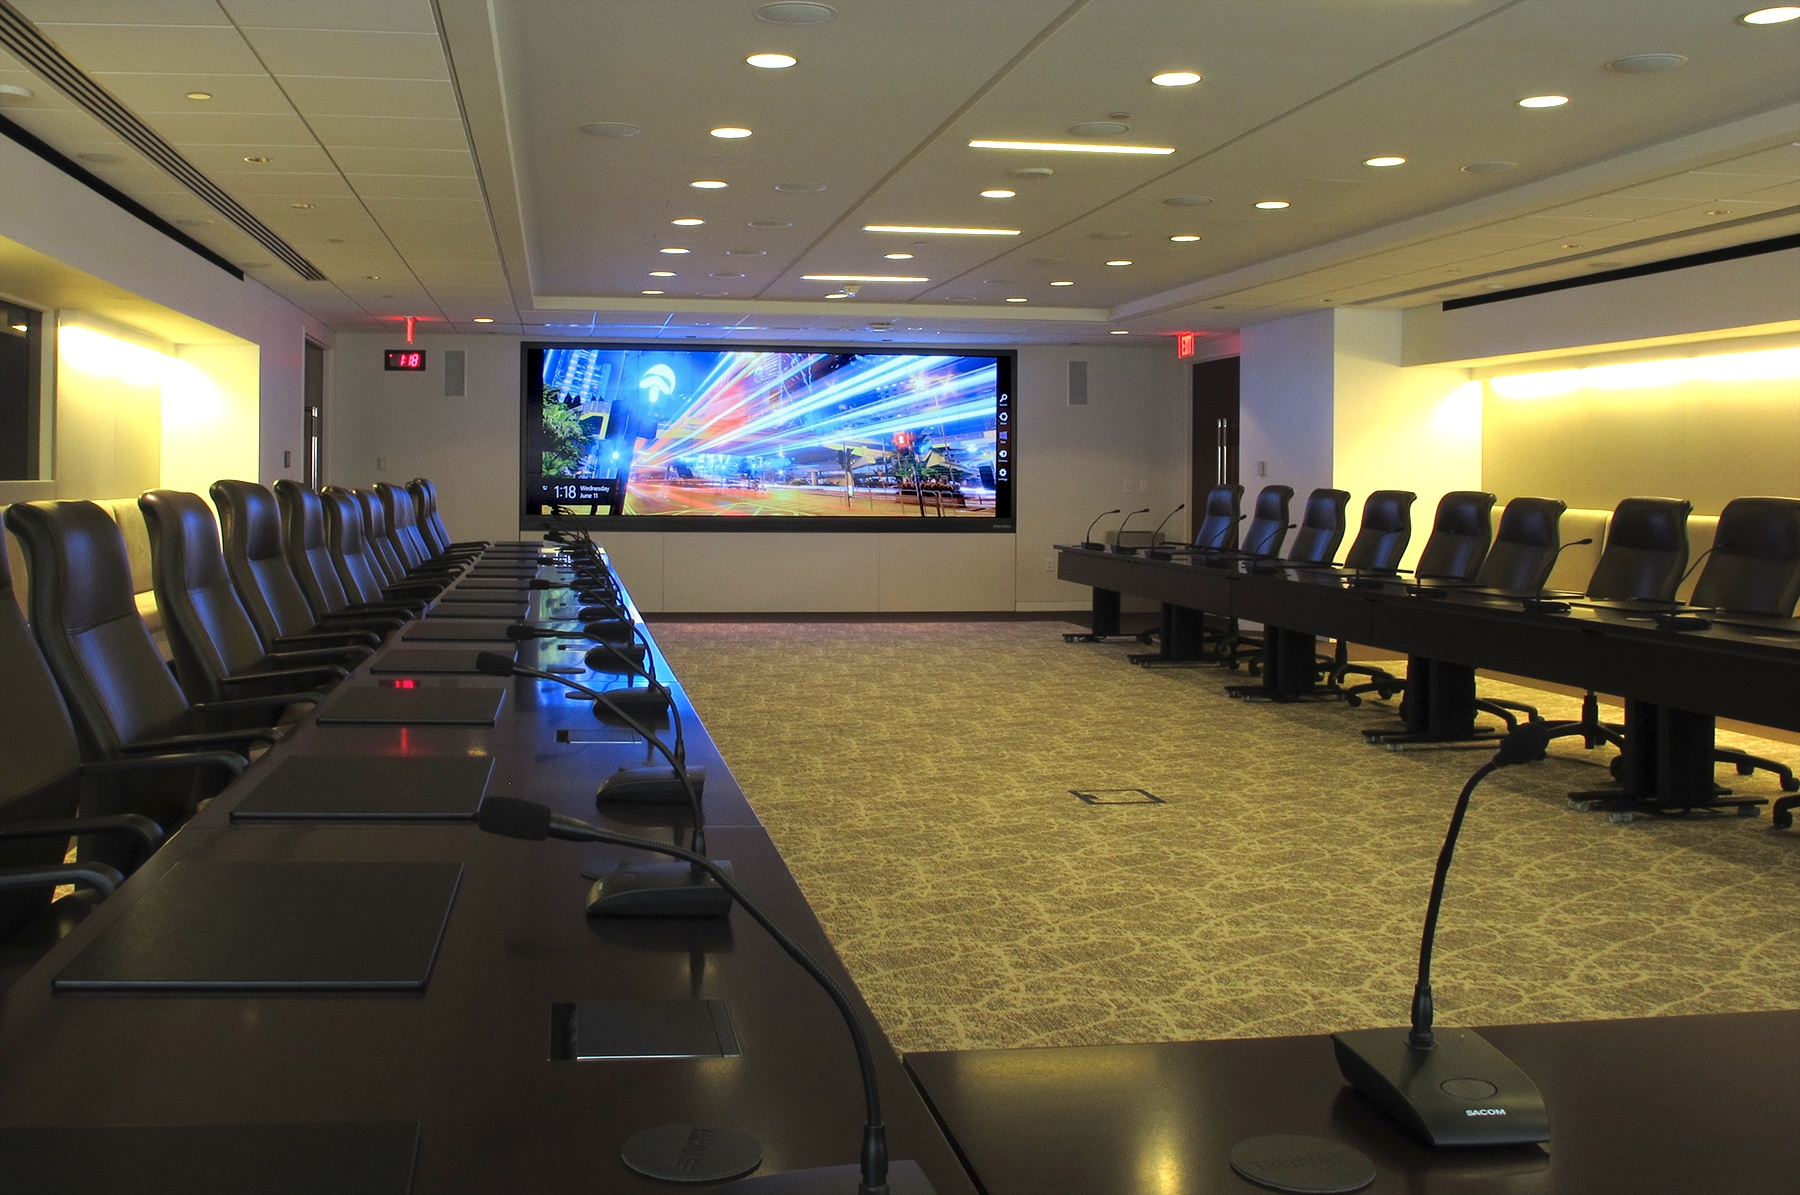 PhRMA Revitalizes Executive Boardroom with a Prysm Cascade Video Wall